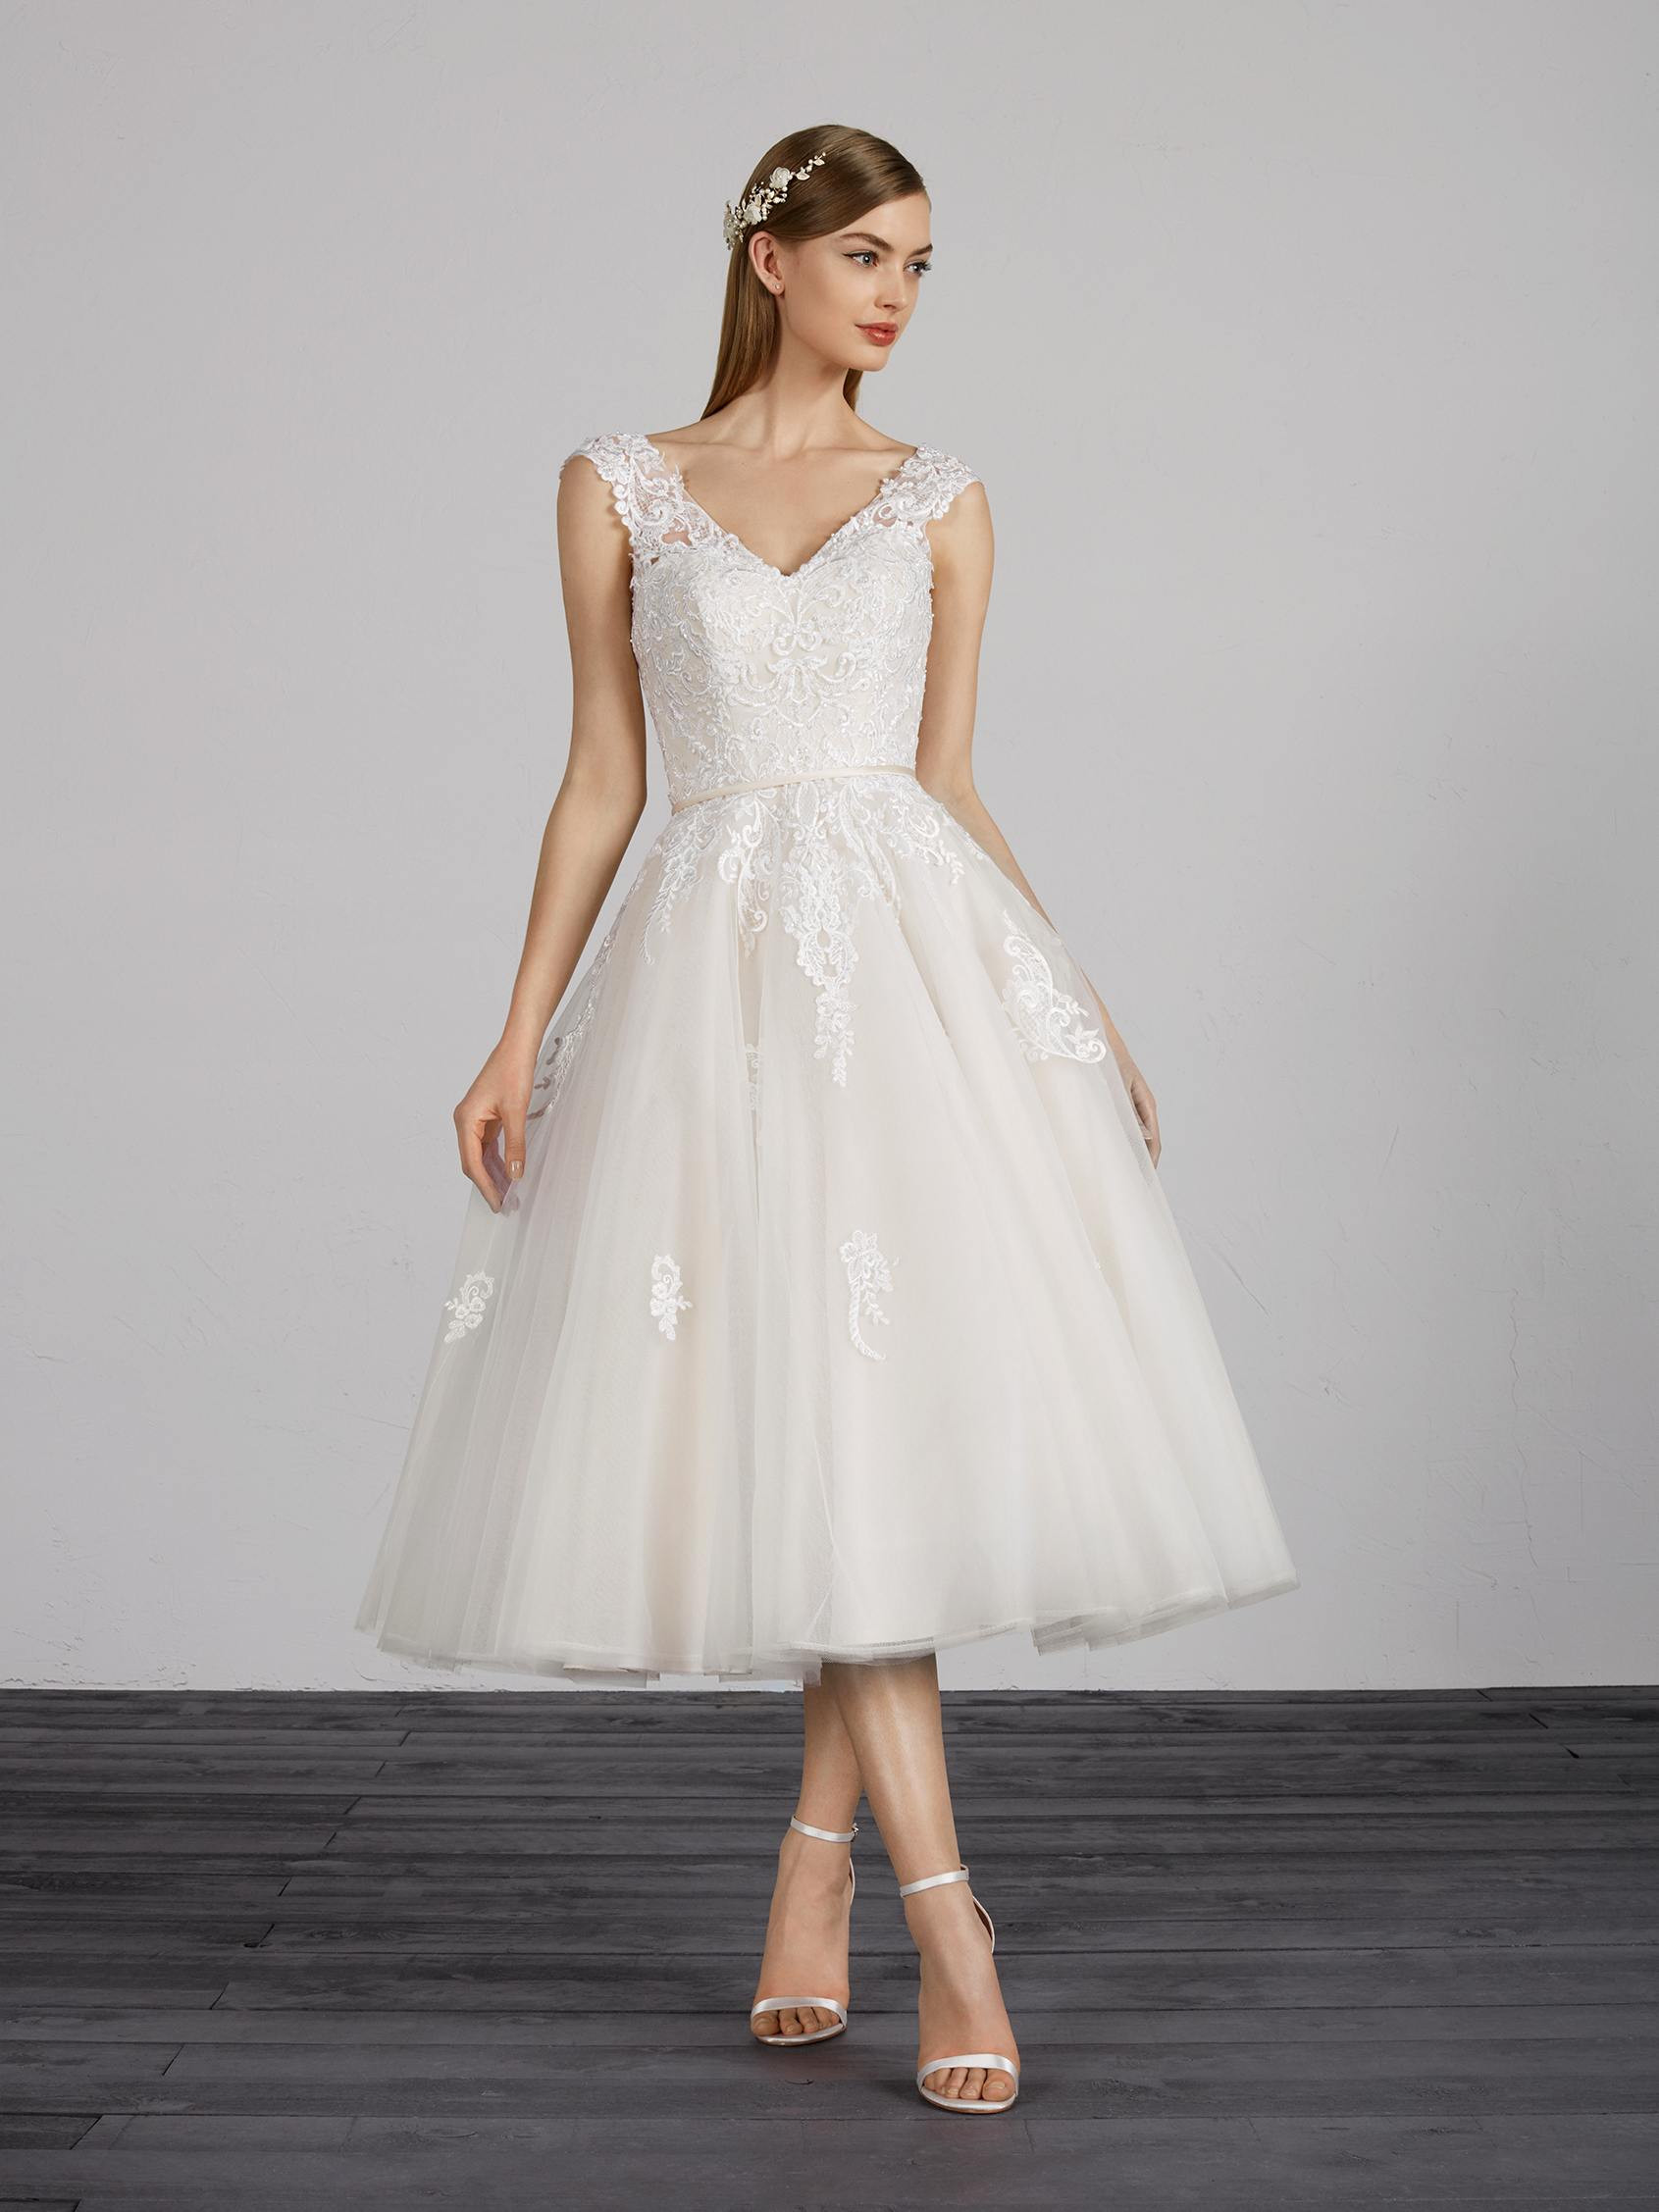 Weddingdressshortfullskirt: Short Full Skirt Wedding Dress At Reisefeber.org